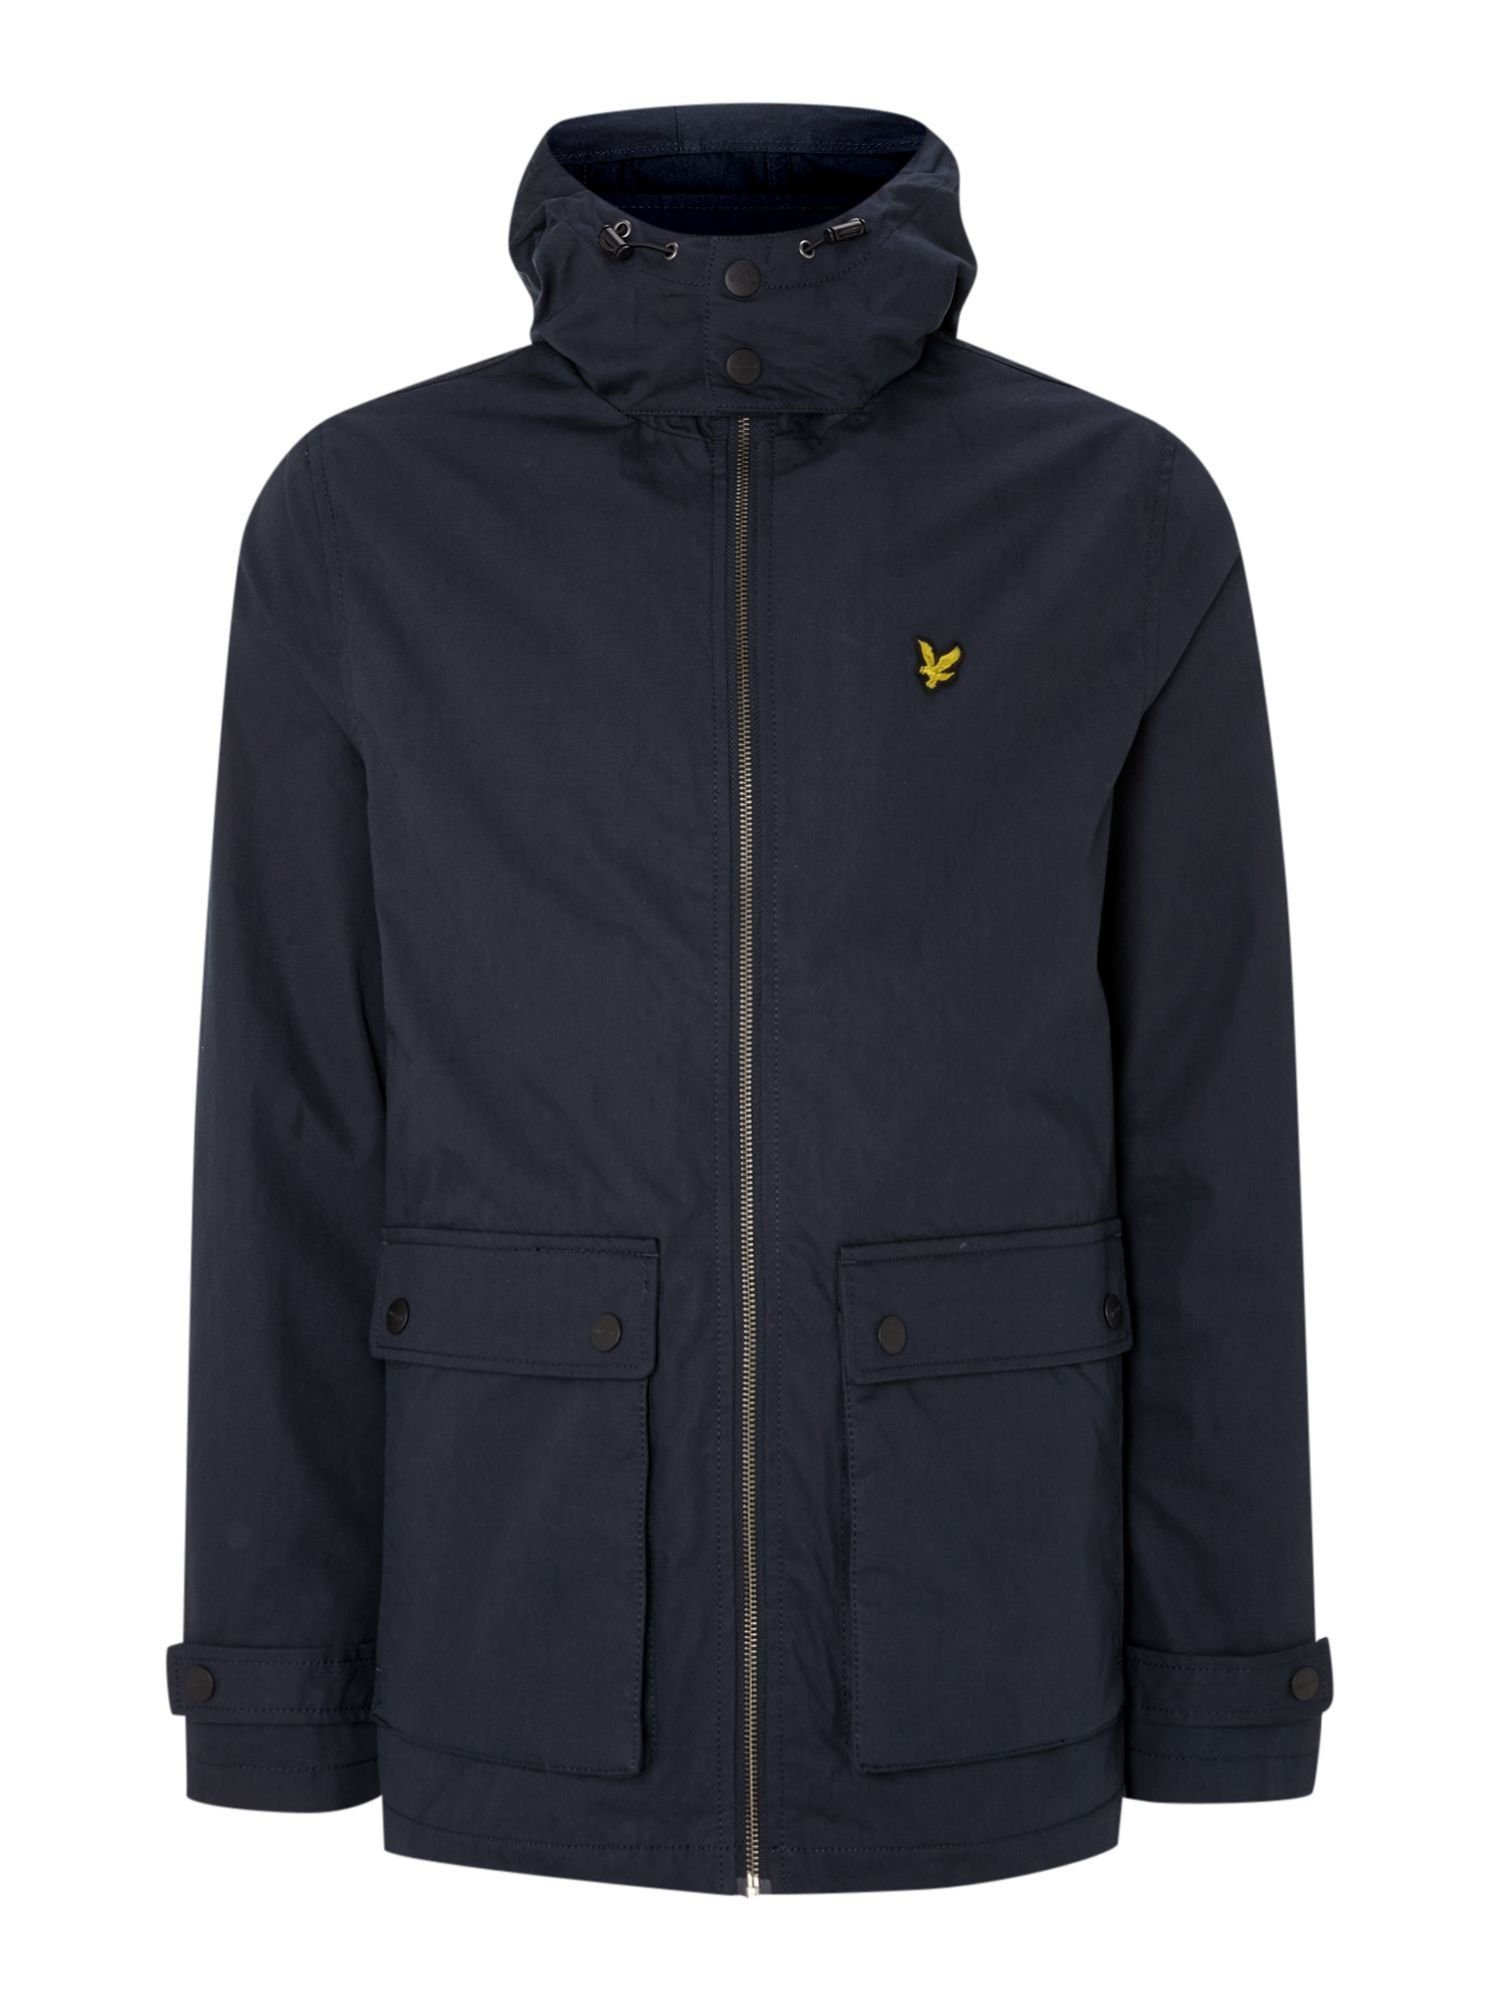 Mens Lyle and Scott Microfleece lined jacket Navy